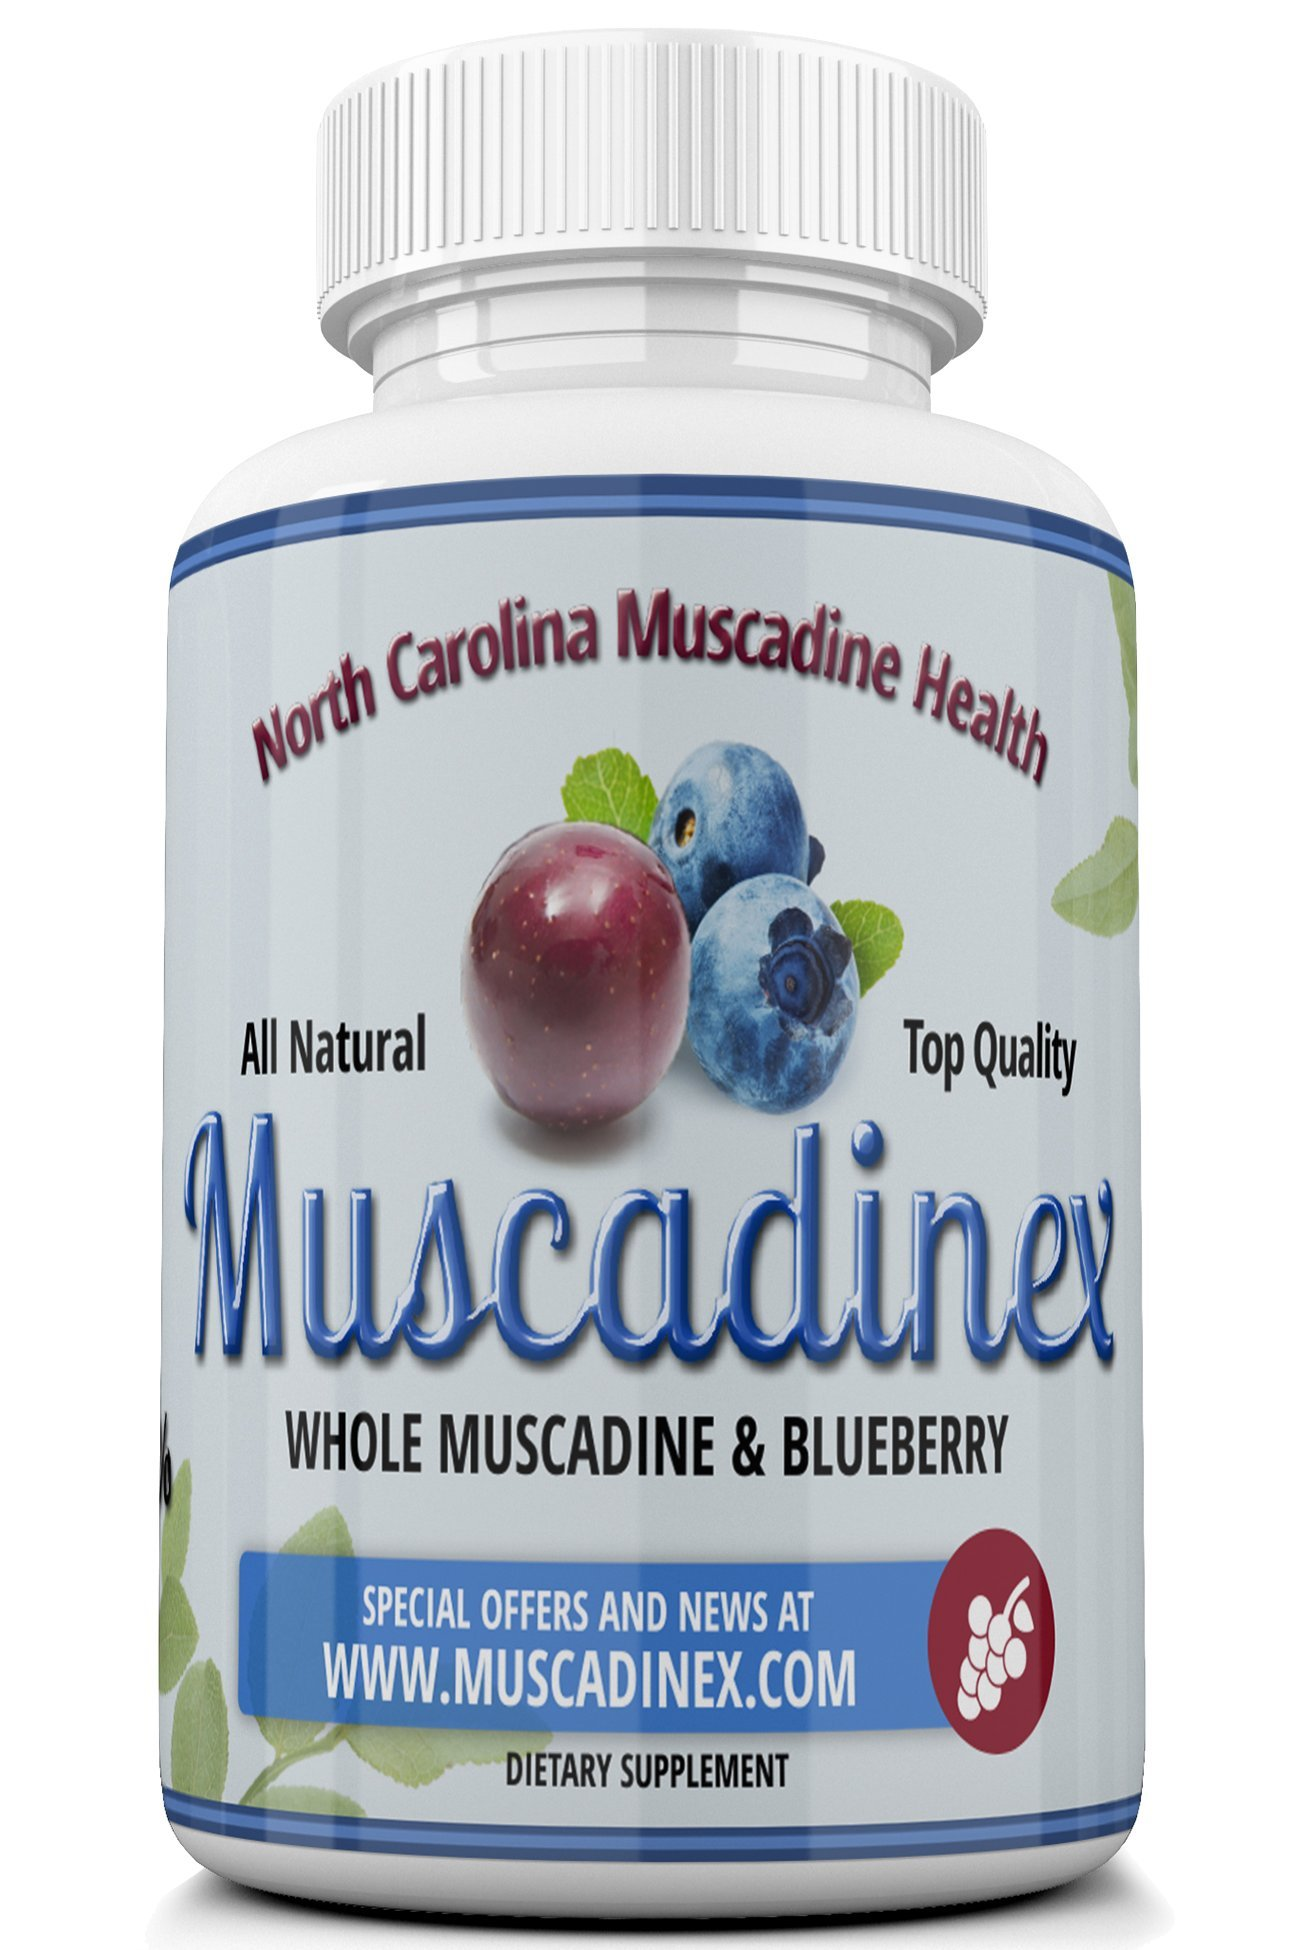 Muscadine MX2 Blueberry Plus Muscadine Brain Protection - 60x 500Mg Vegetarian Capsules. Cognitive Boost and Blood Glucose Reduction. Made in The USA. Natural Resveratrol and Pterostilbene.